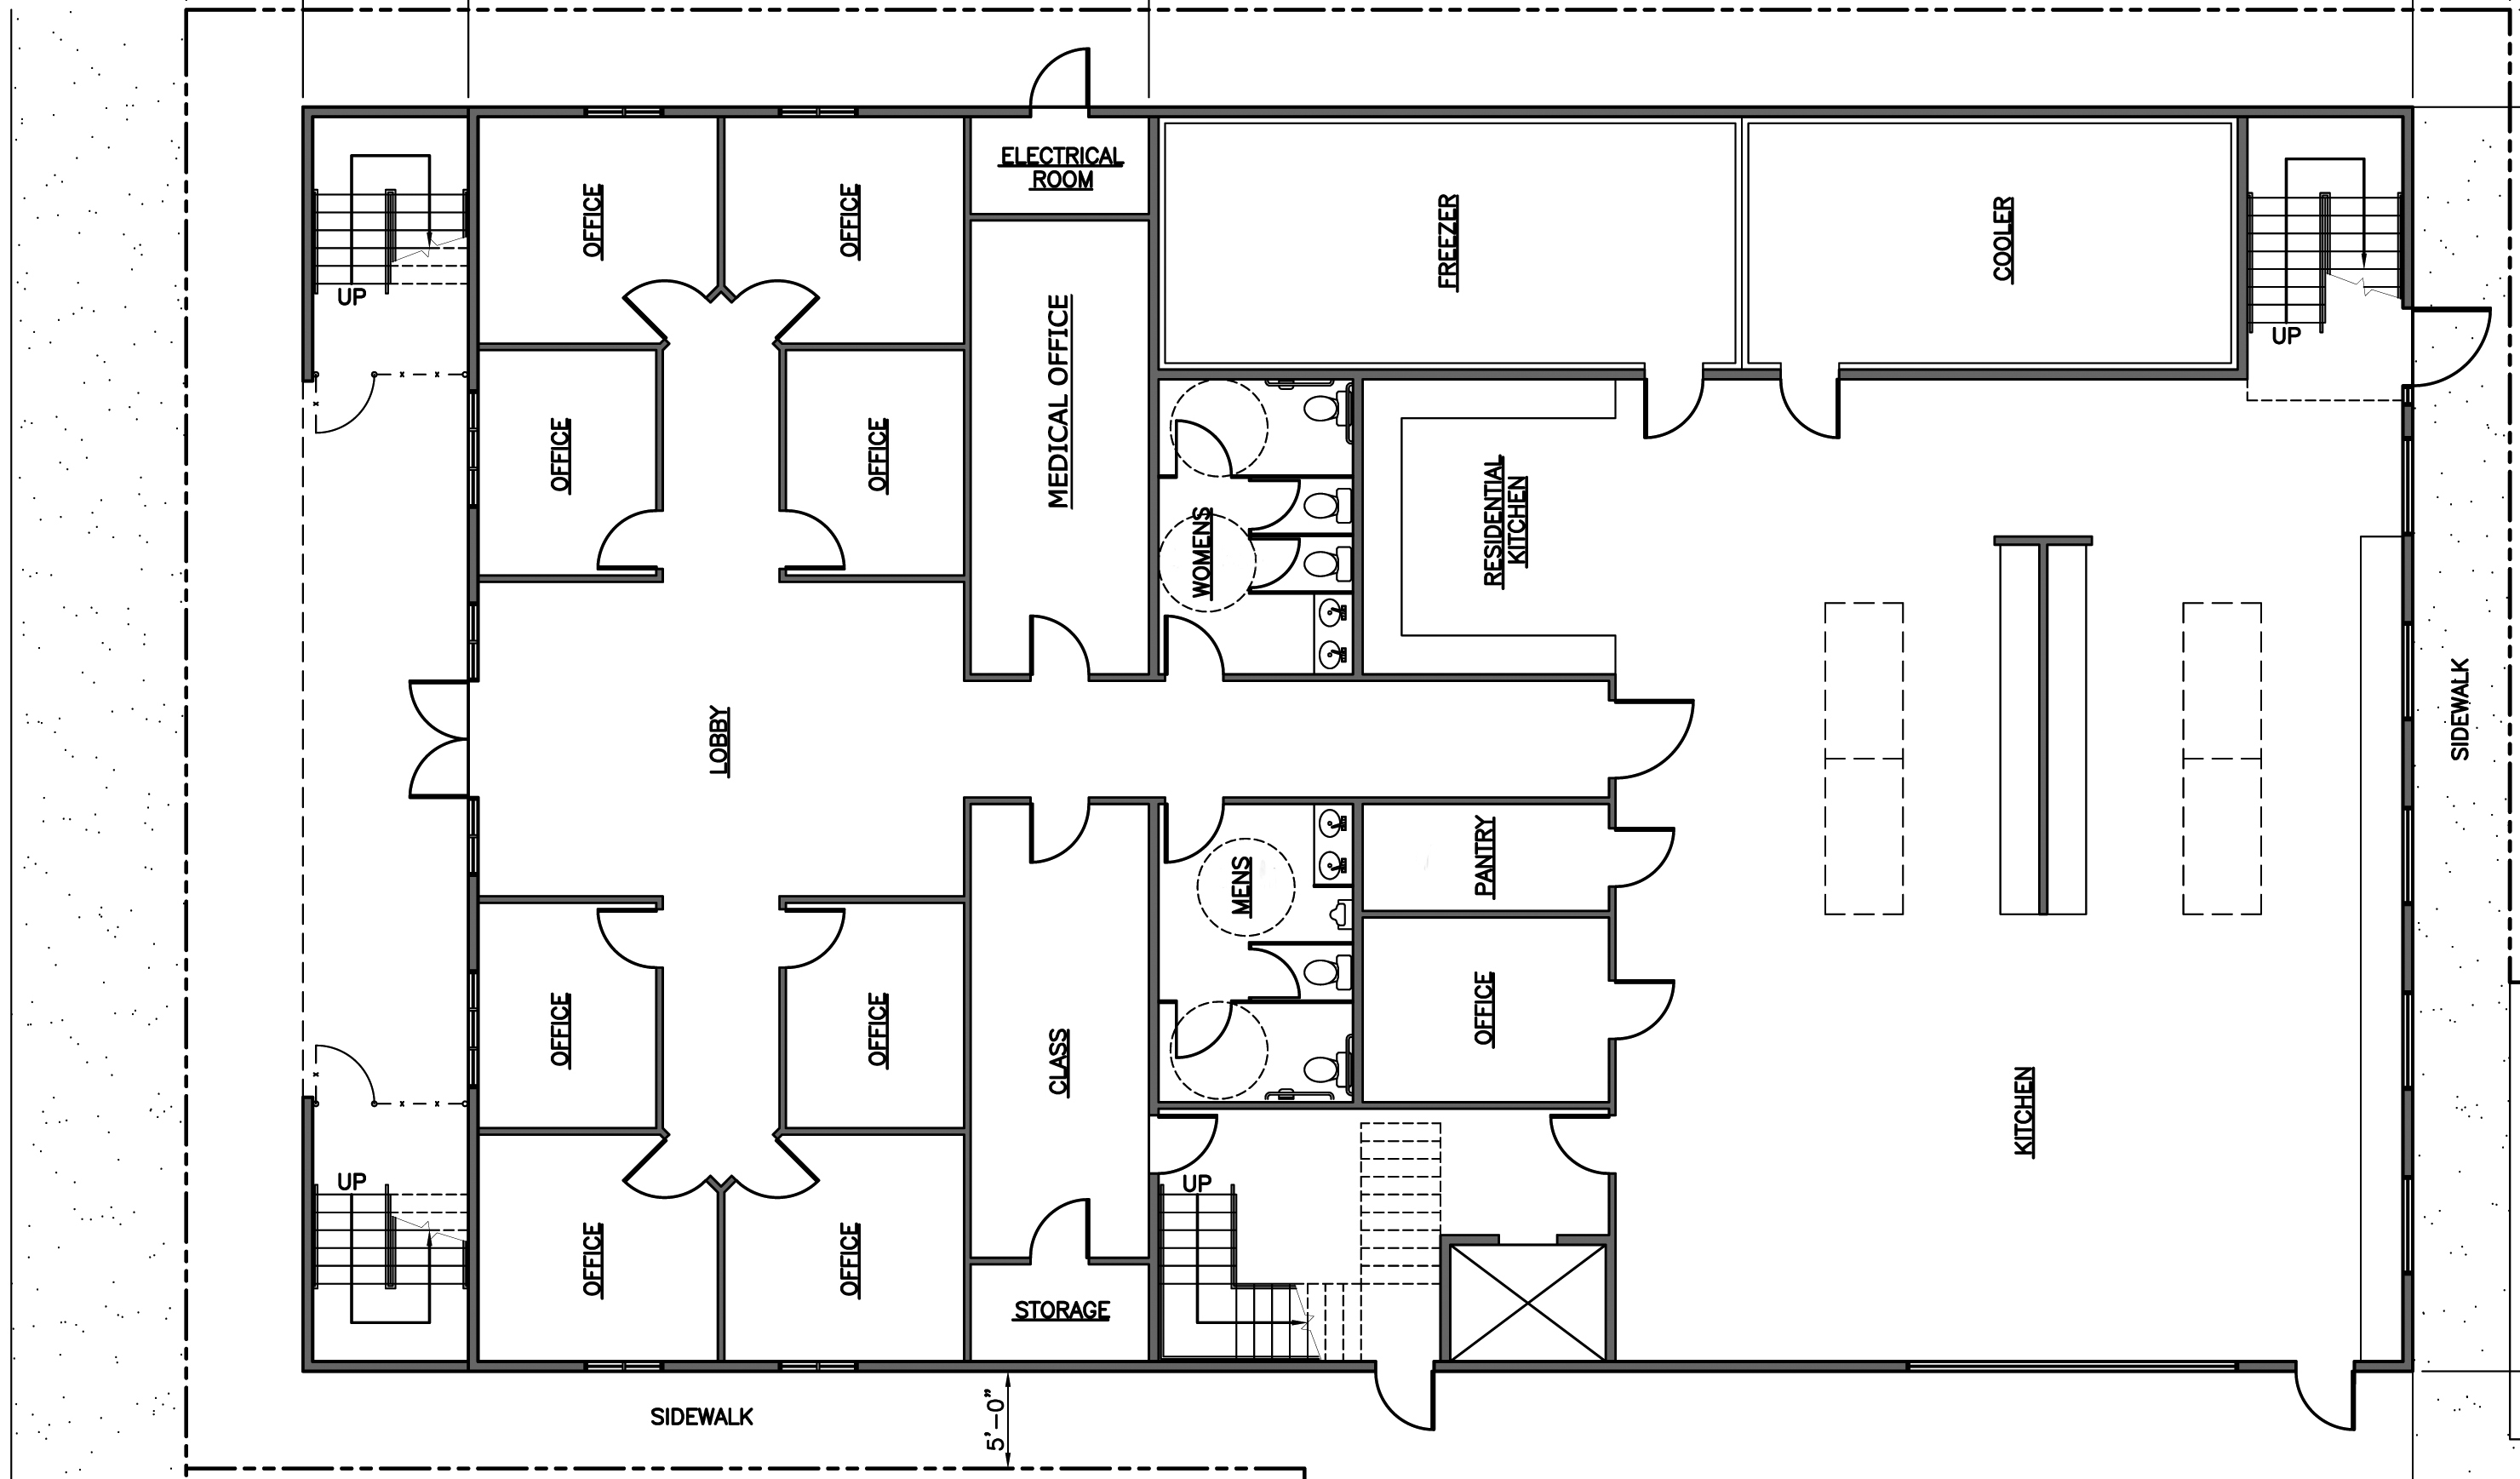 Drawn office software house Hand Drawing Plans By MN